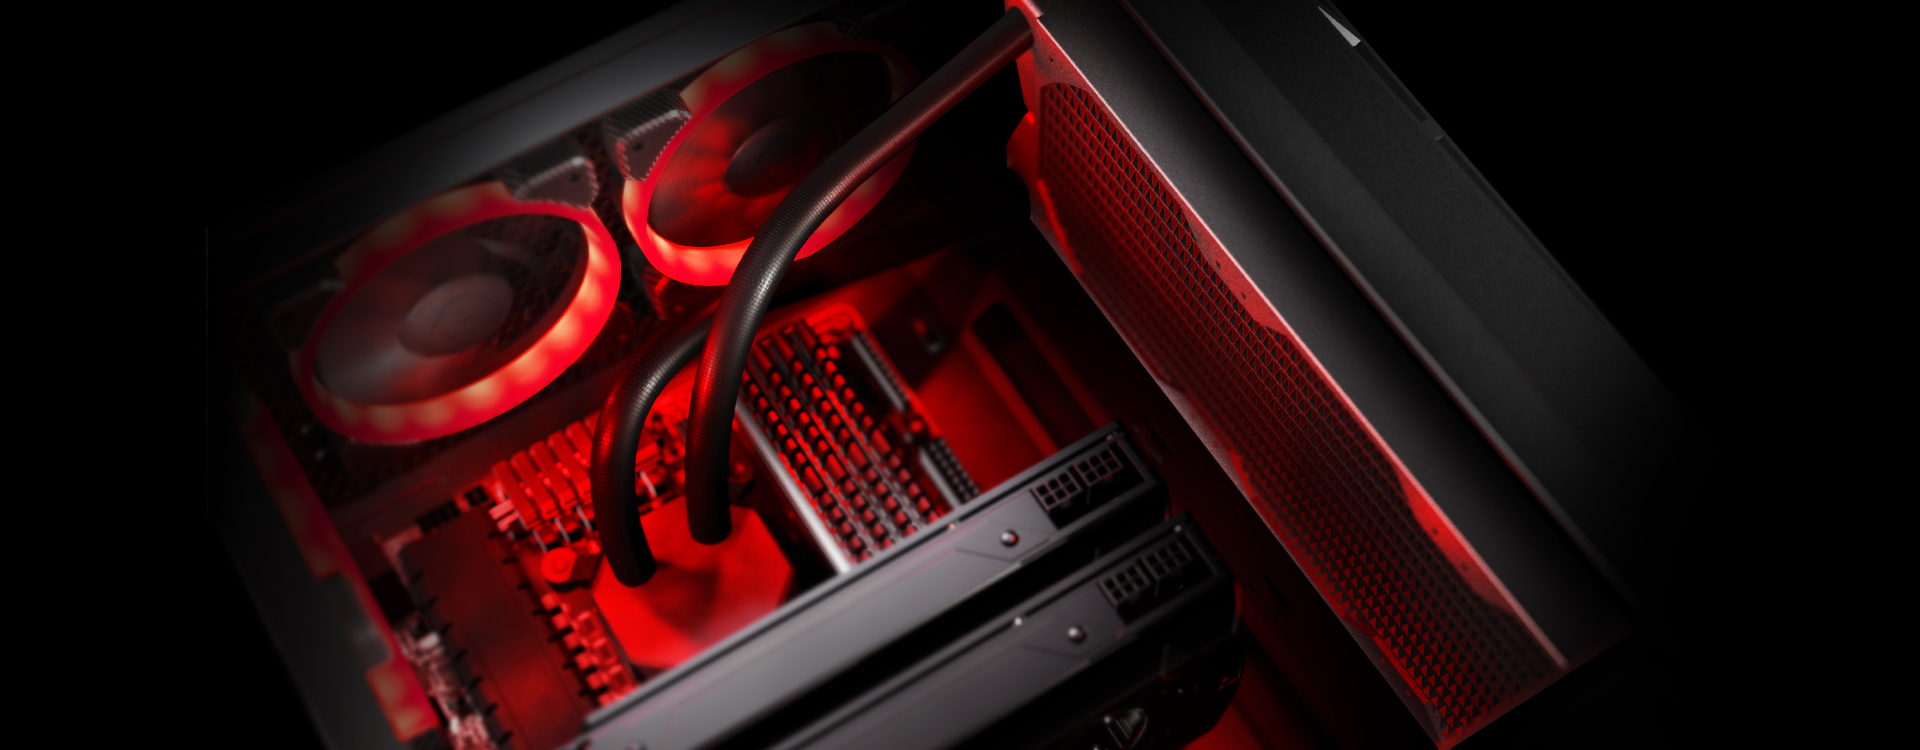 COUGAR TURRET - Pro-Cooling Compact Gaming Case with Tempered Glass